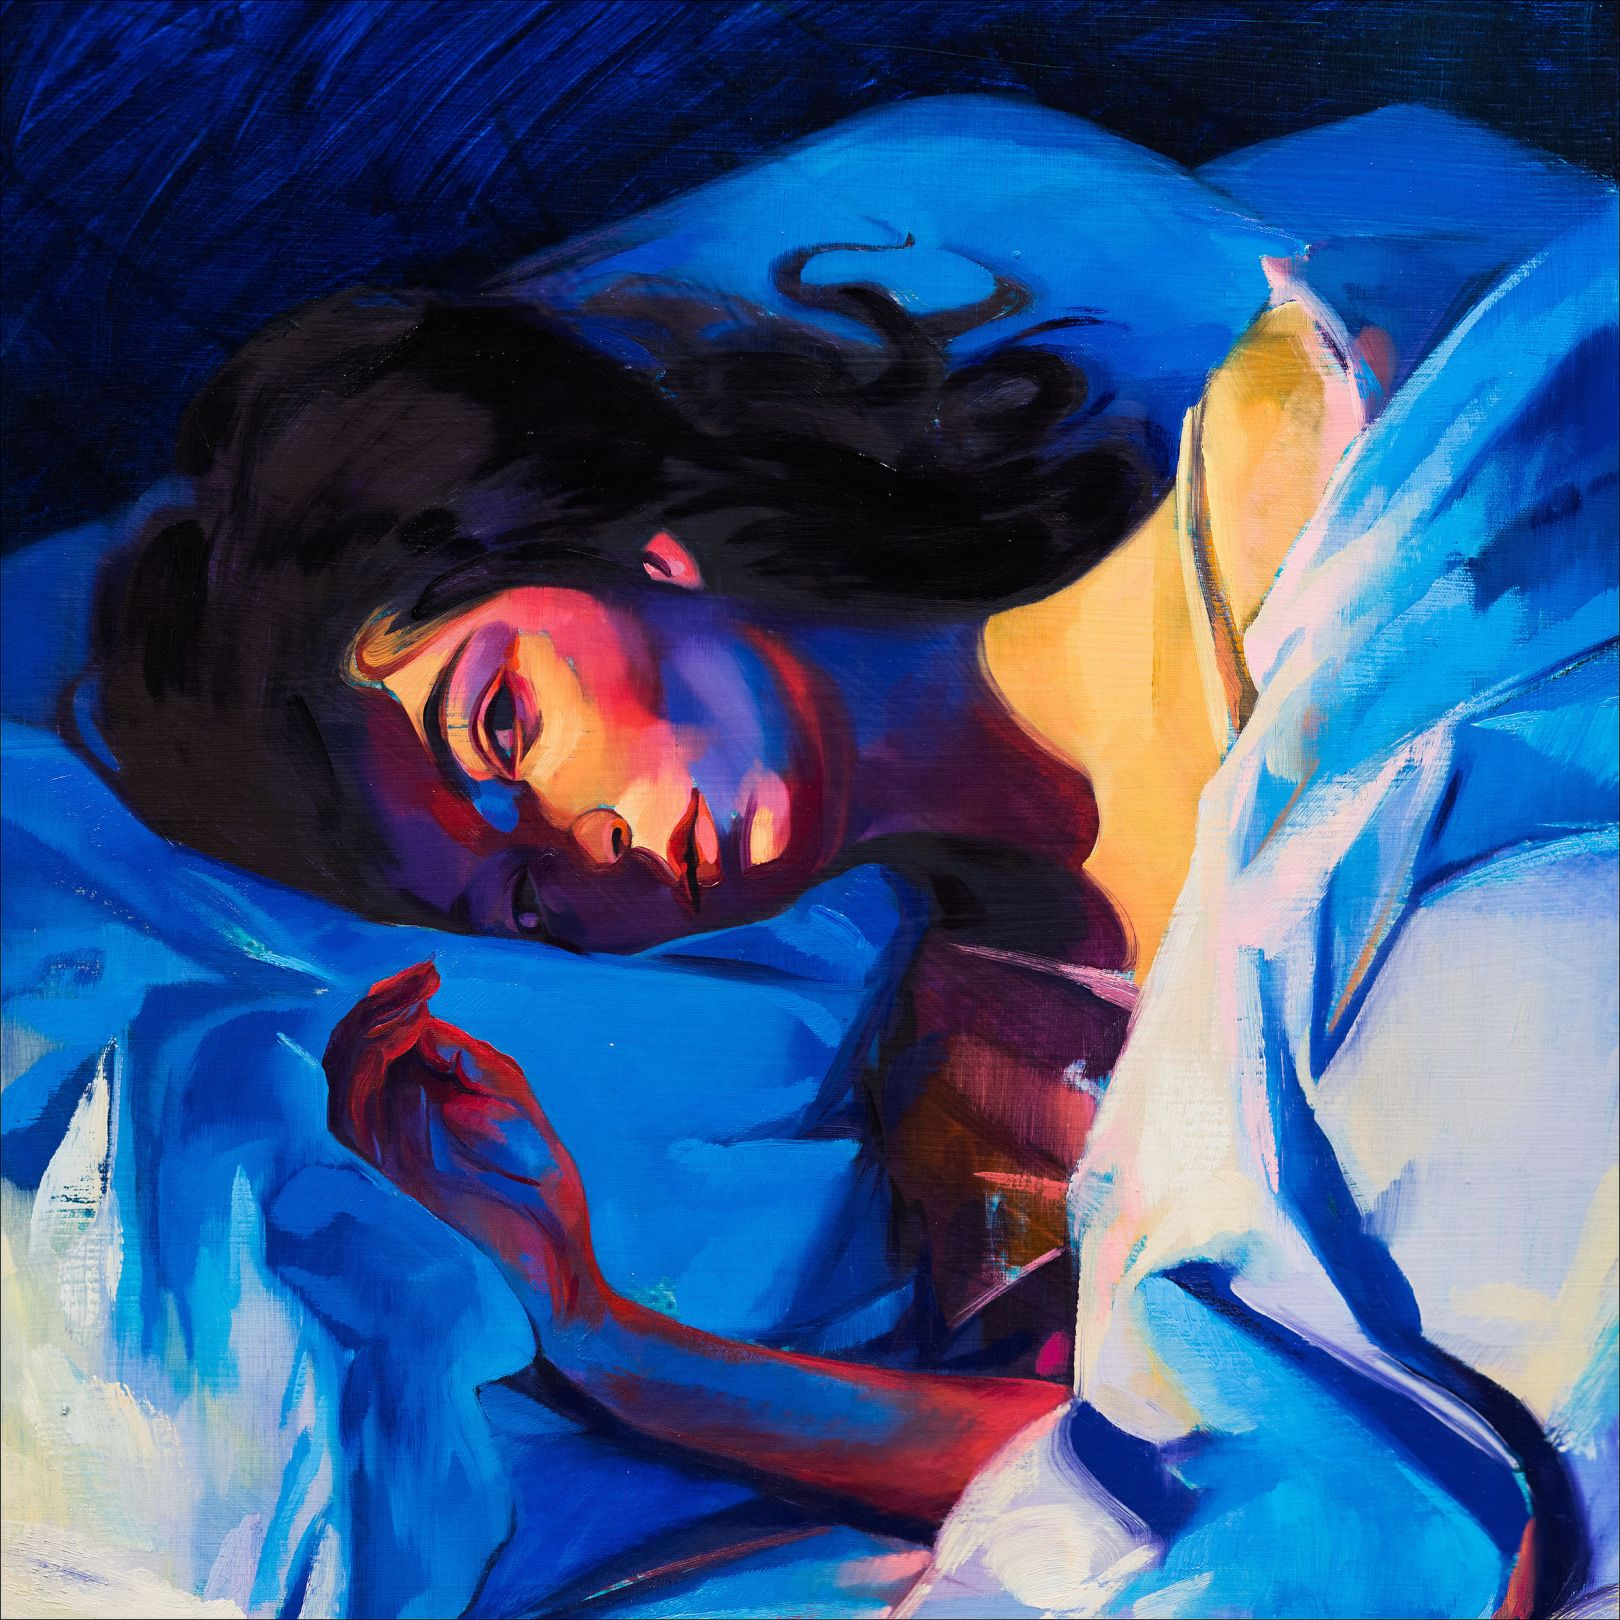 Watercolor artist magazine review - Single Review Lorde Returns To Music With New Single Green Light Intertainment Magazine